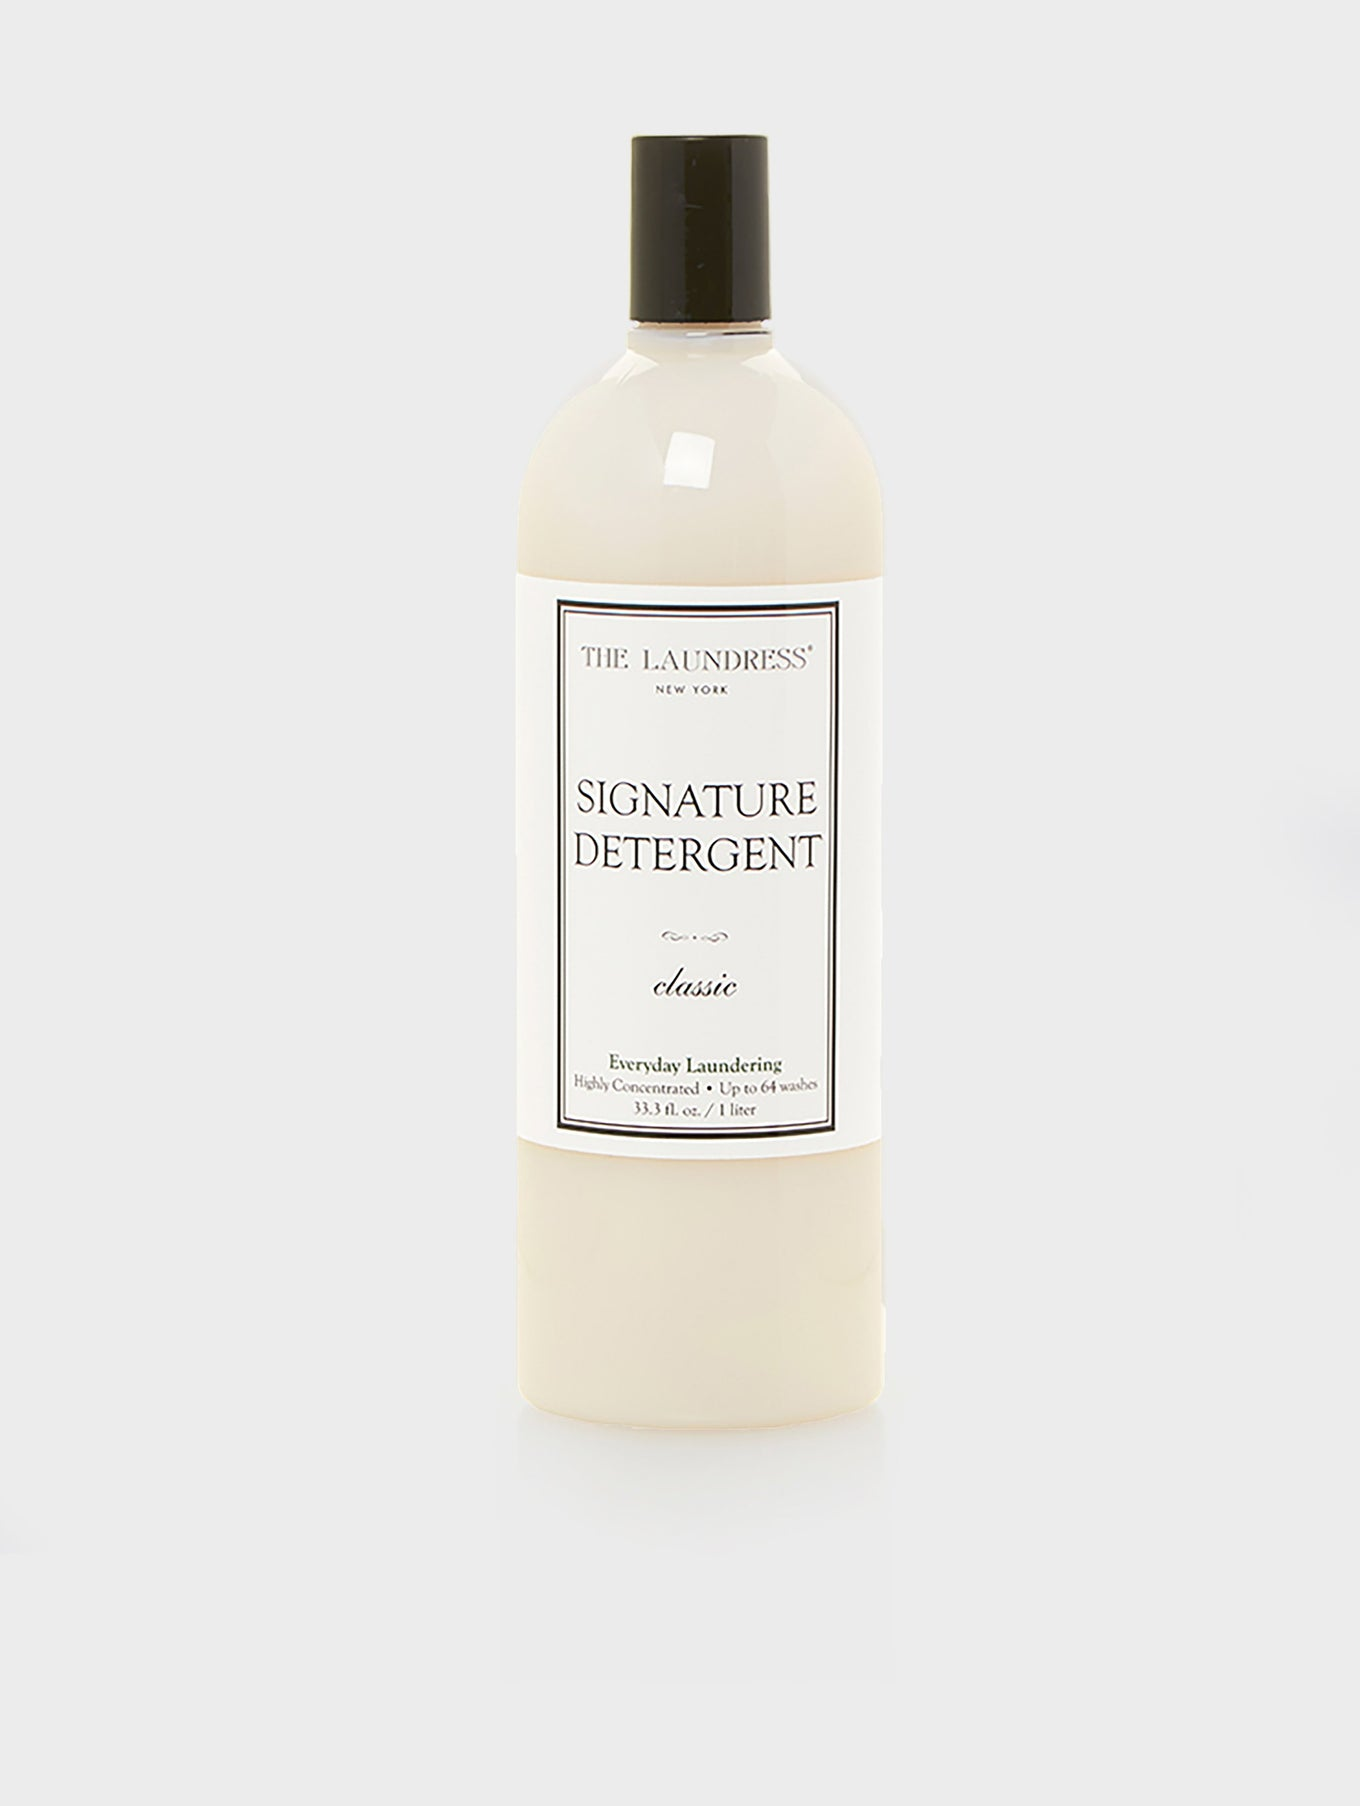 The Laundress Signature Detergent - Bottle - Image 1